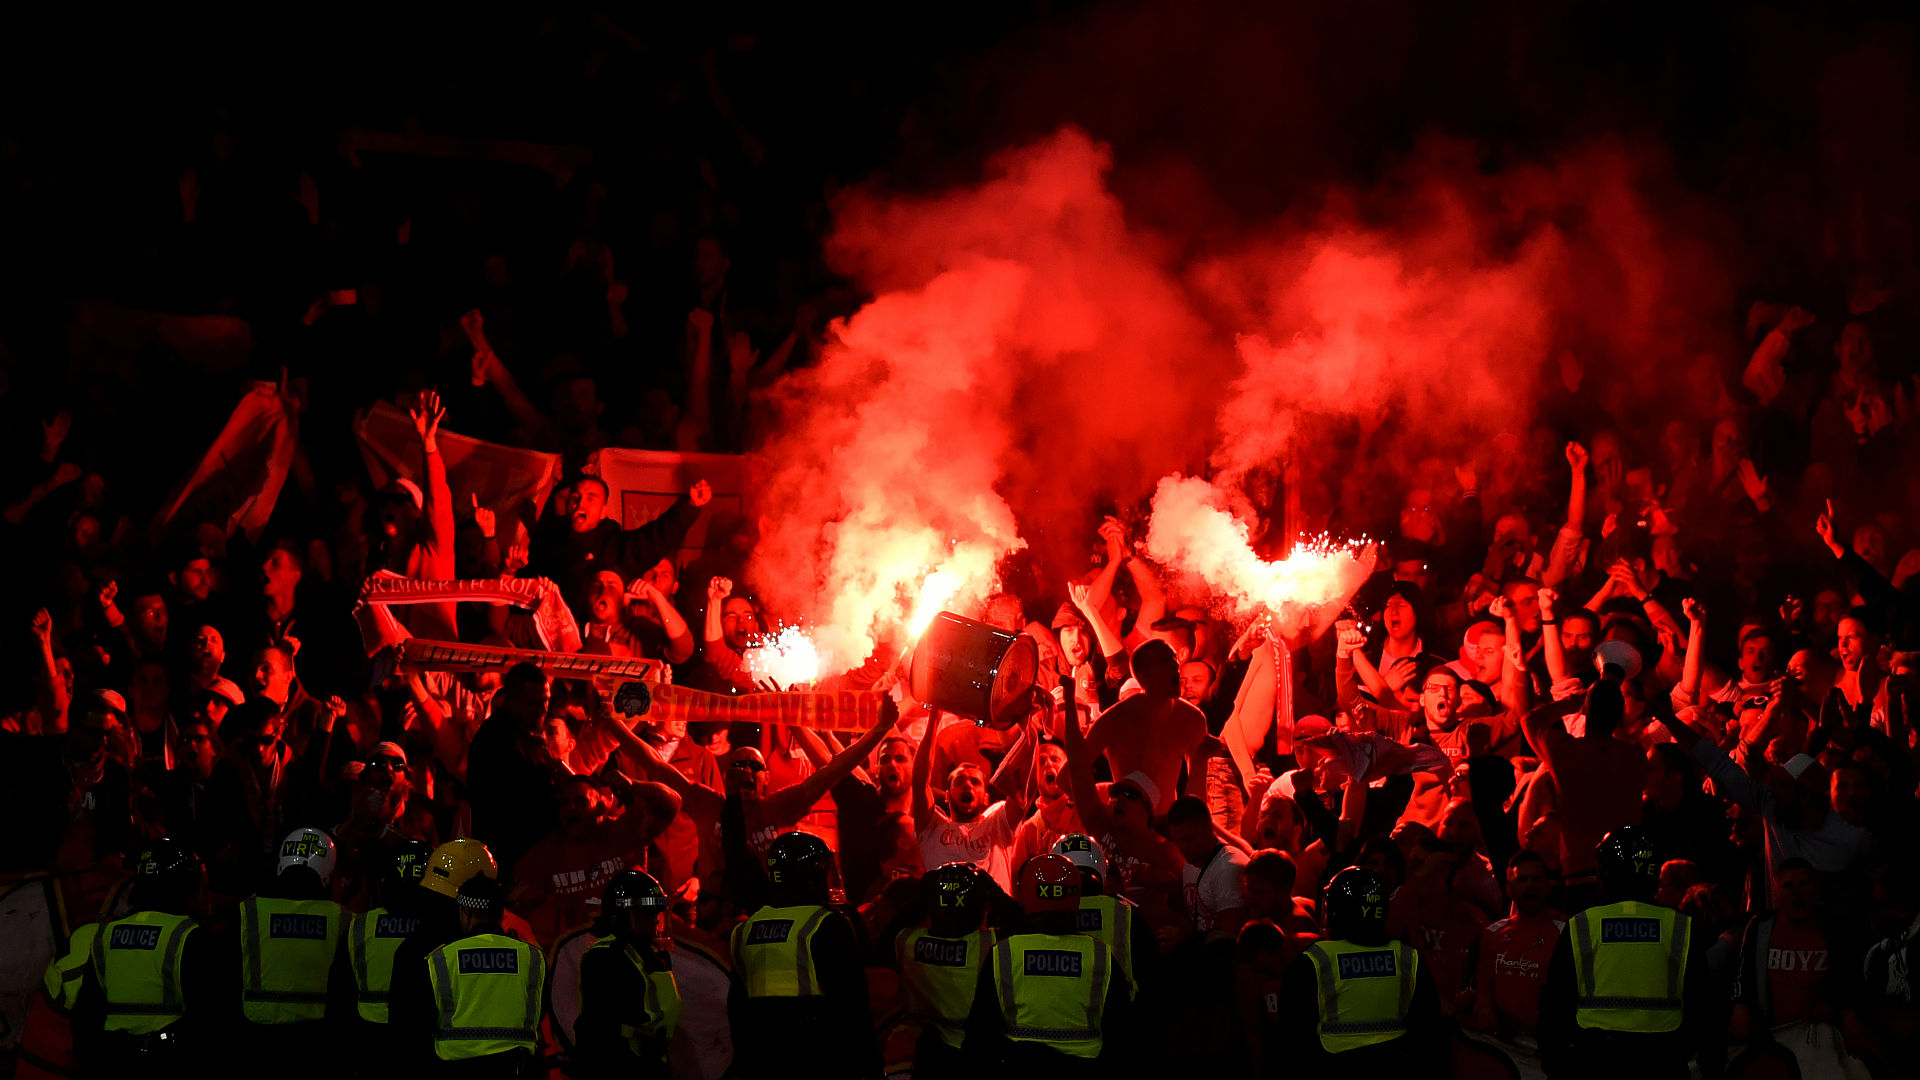 UEFA delay verdict on Arsenal and Cologne crowd incidents